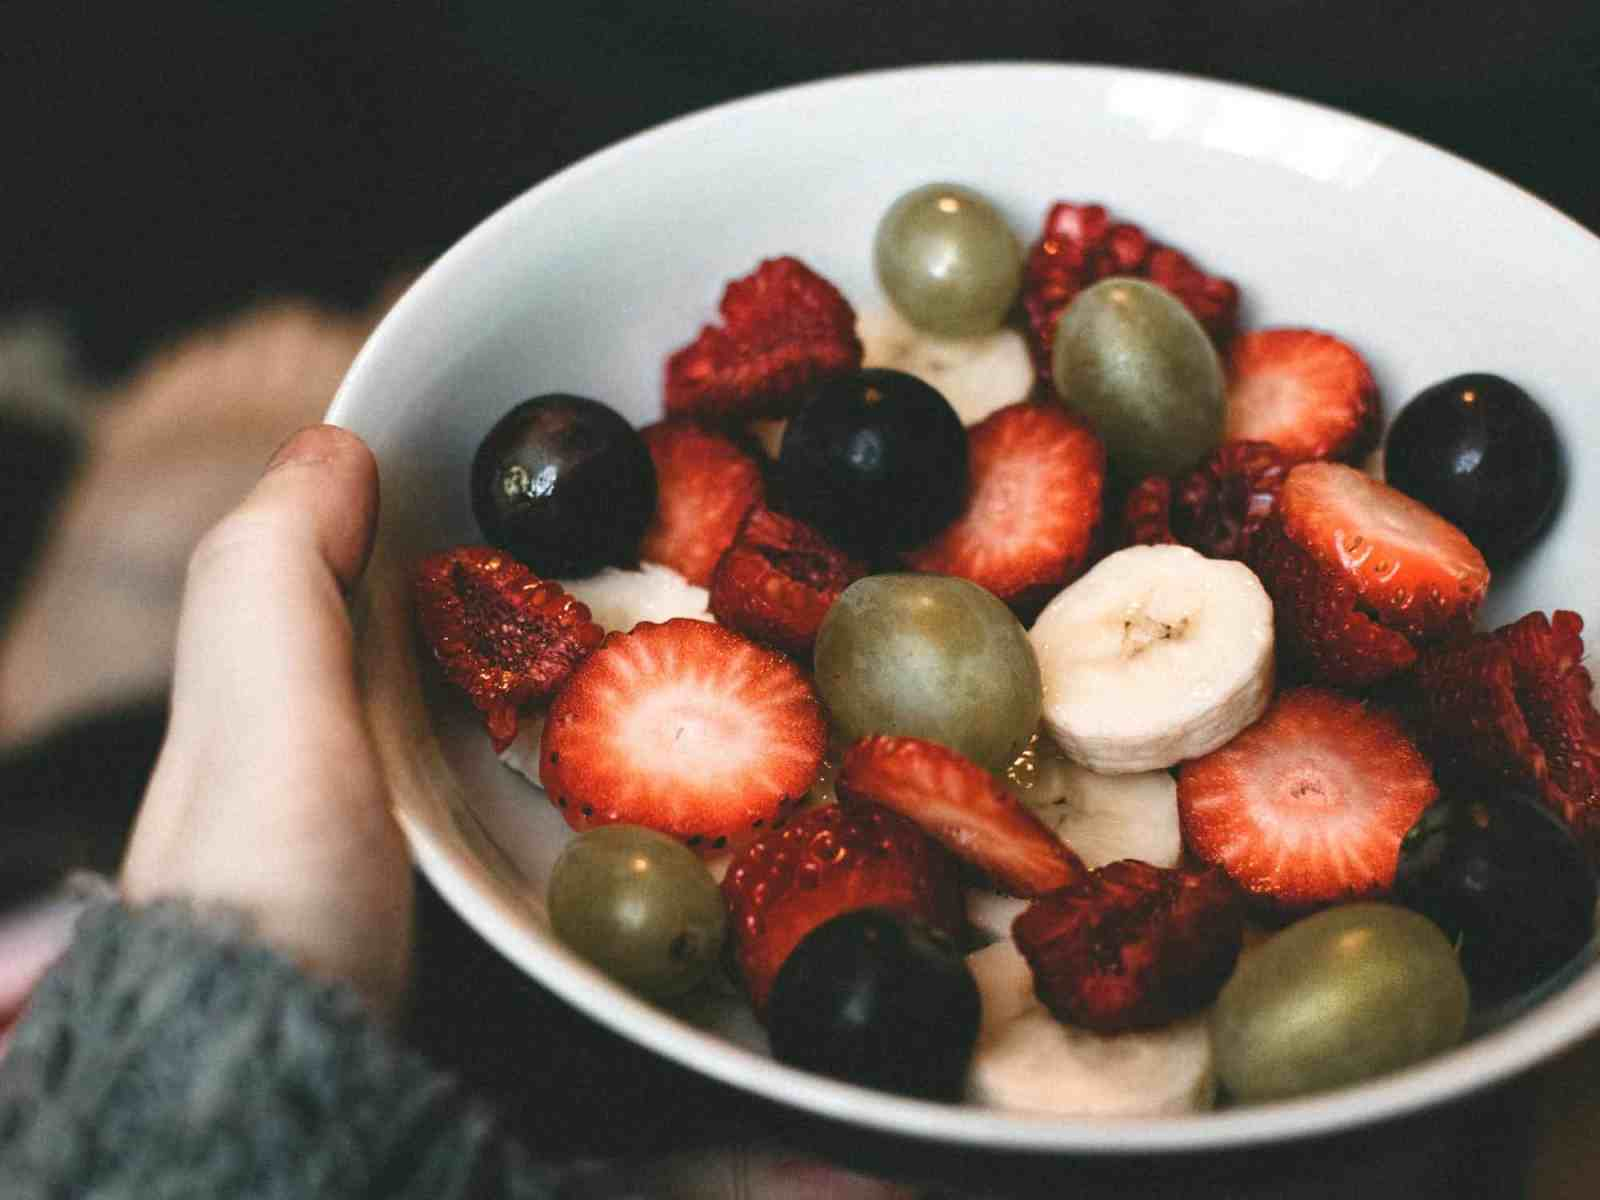 Healthy alternatives to junk food sounds dull, but there are a lot of delicious healthy snacks out there you can eat instead!